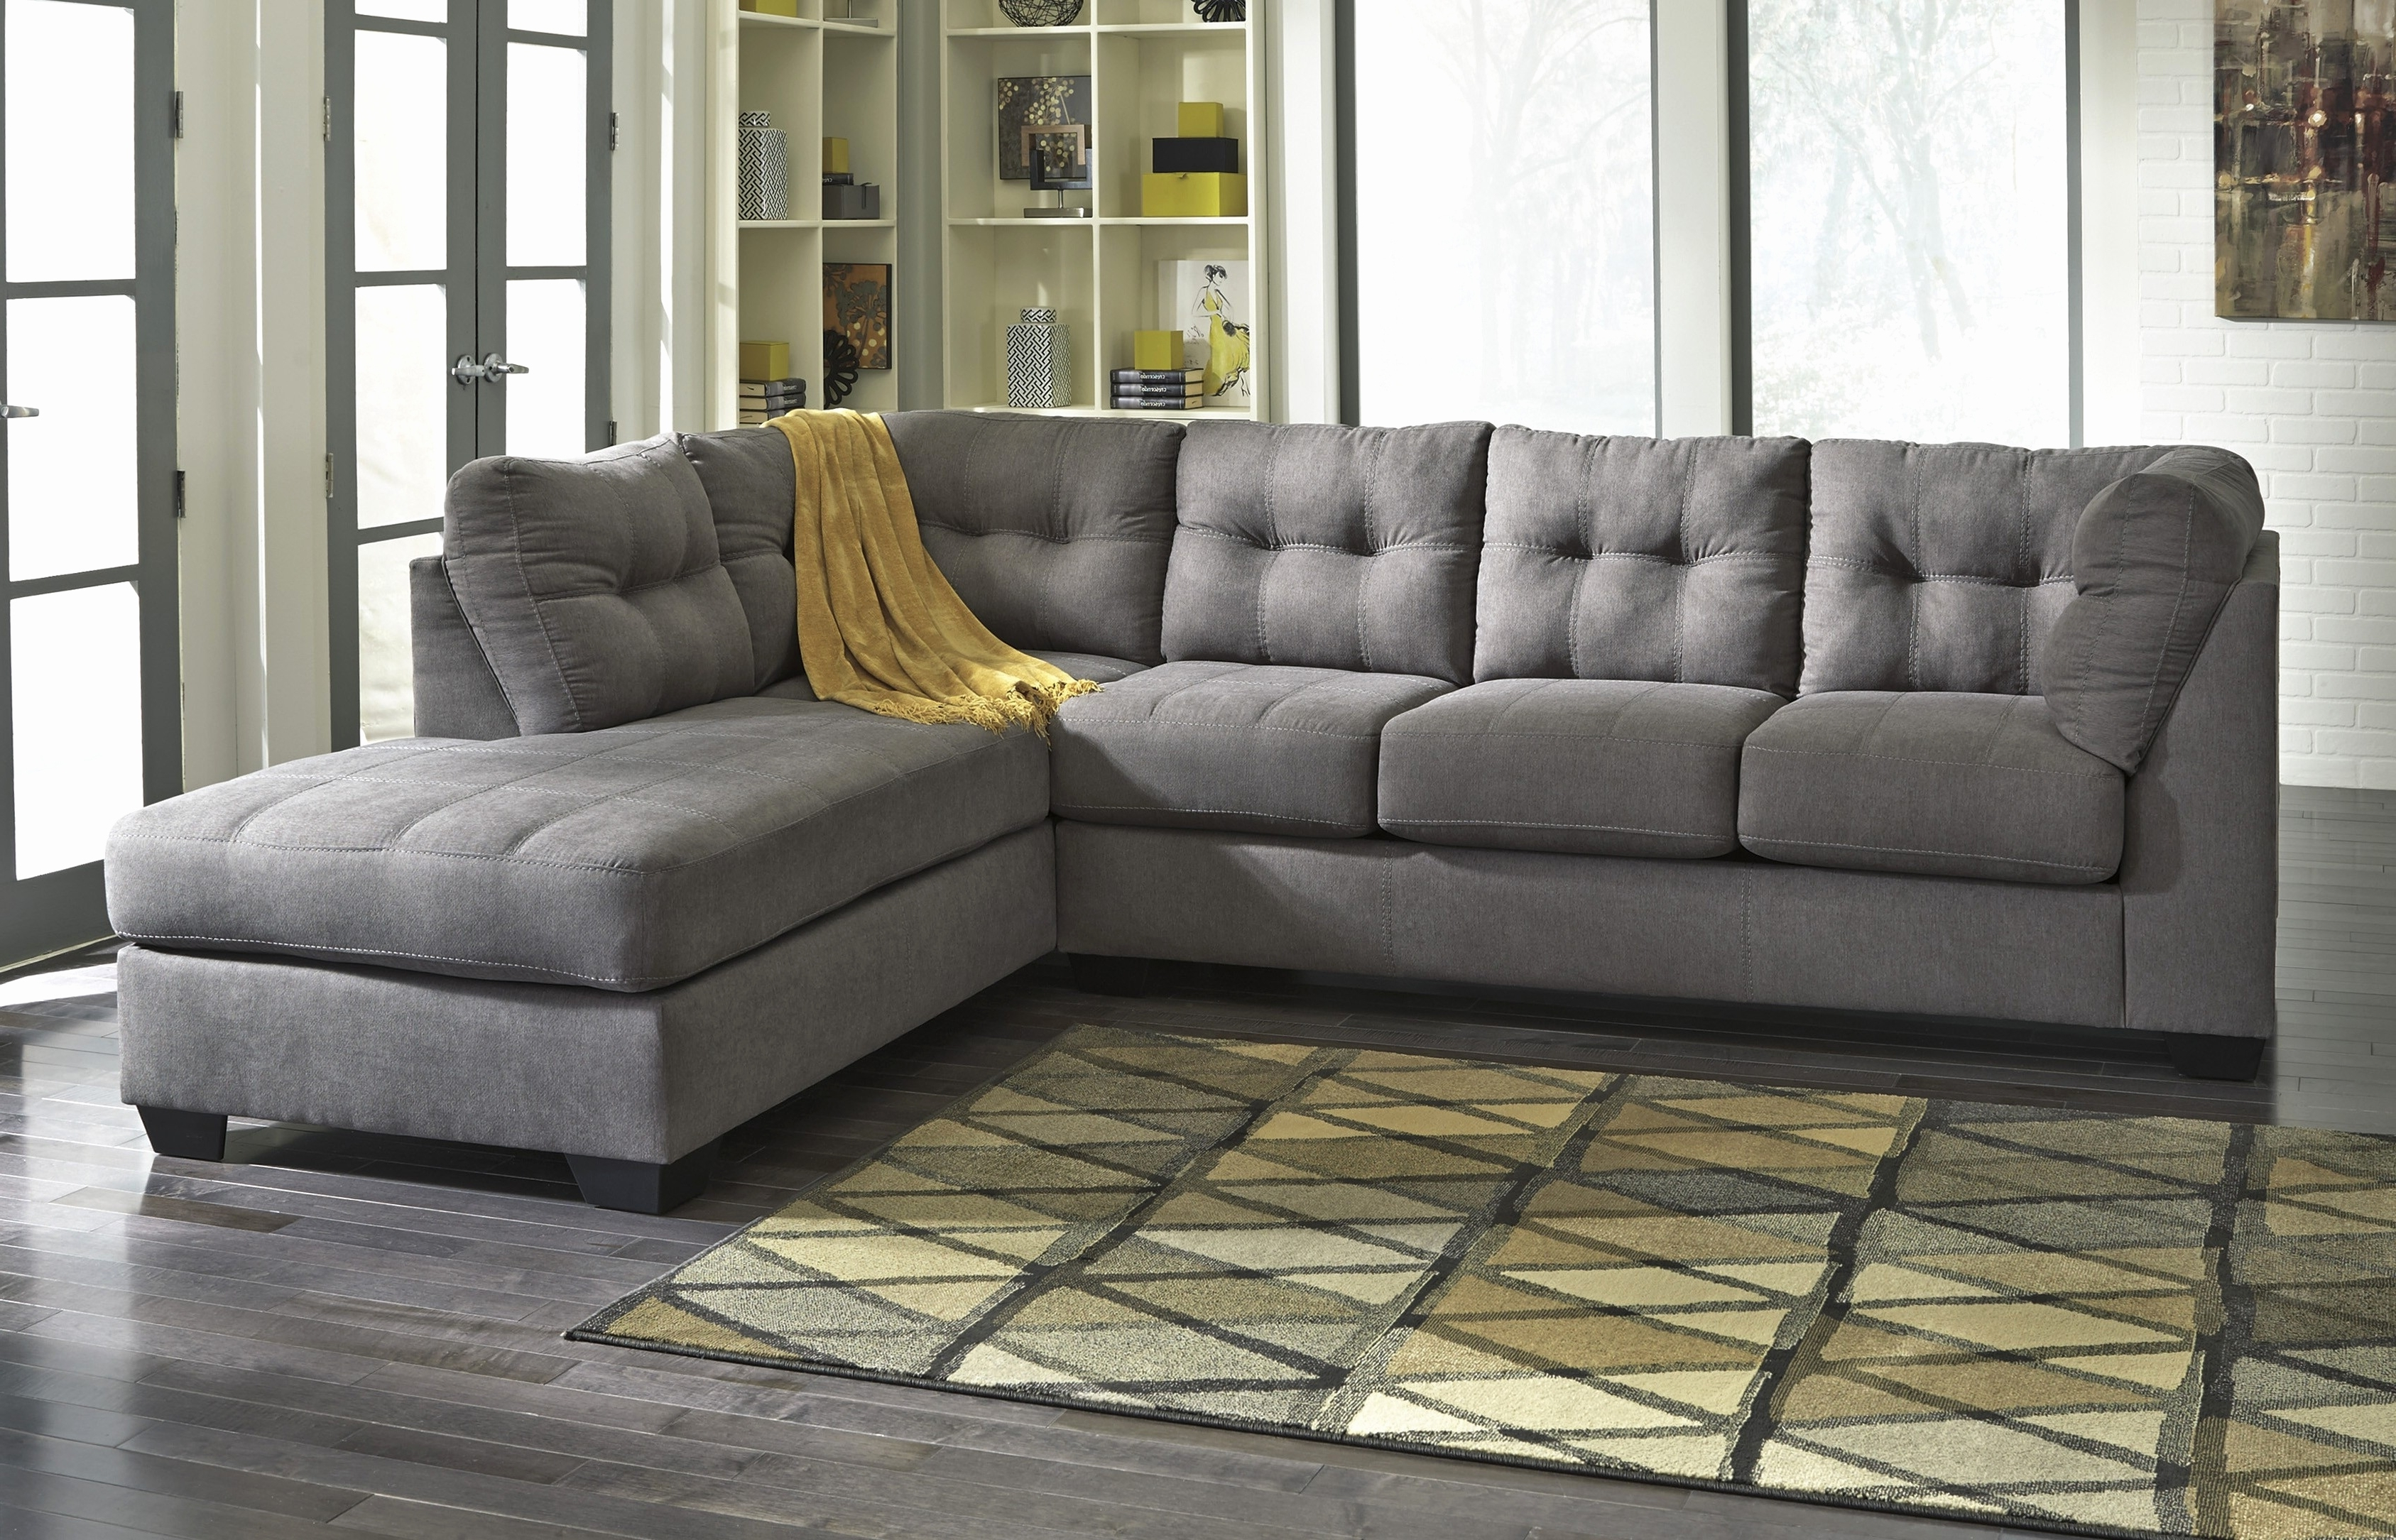 Trendy Sectional Sofas At Ashley Pertaining To Unique Sectional Sleeper Sofa Ashley 2018 – Couches And Sofas Ideas (View 9 of 15)